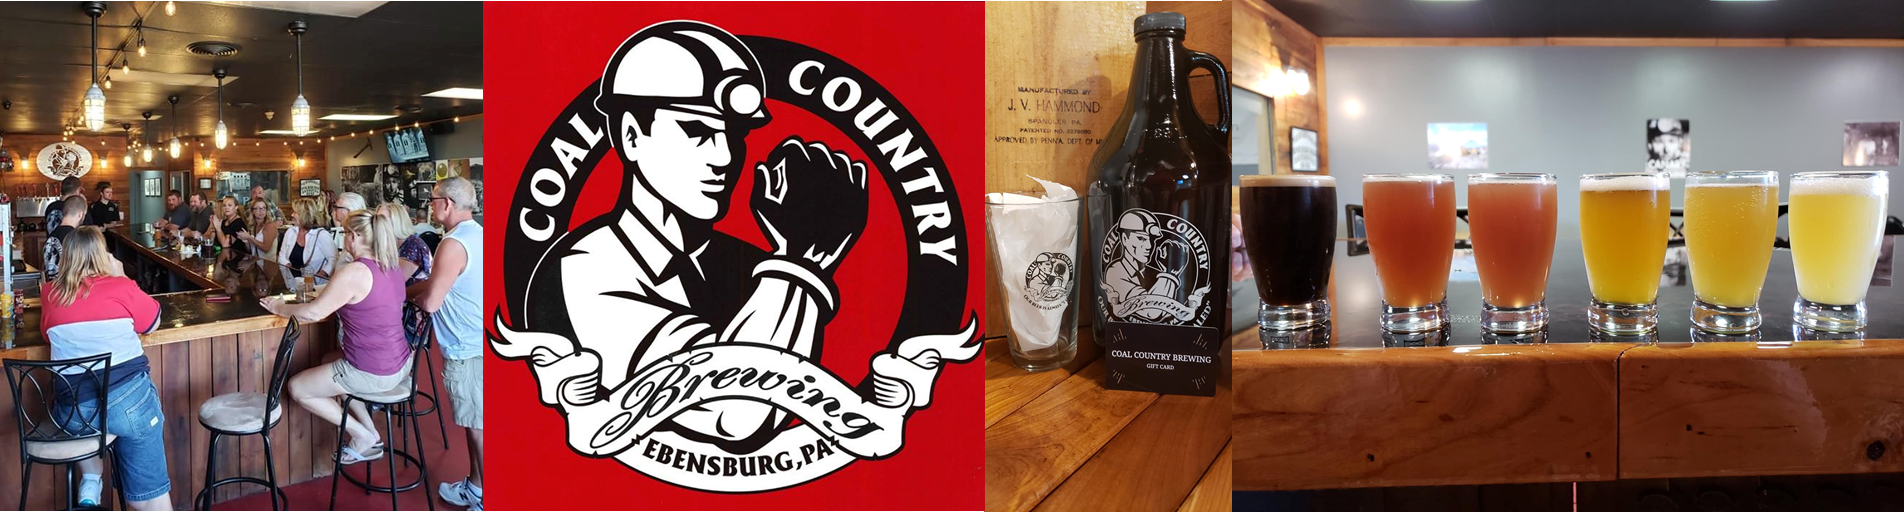 Visit Johnstown Pa | Coal Country Brewing